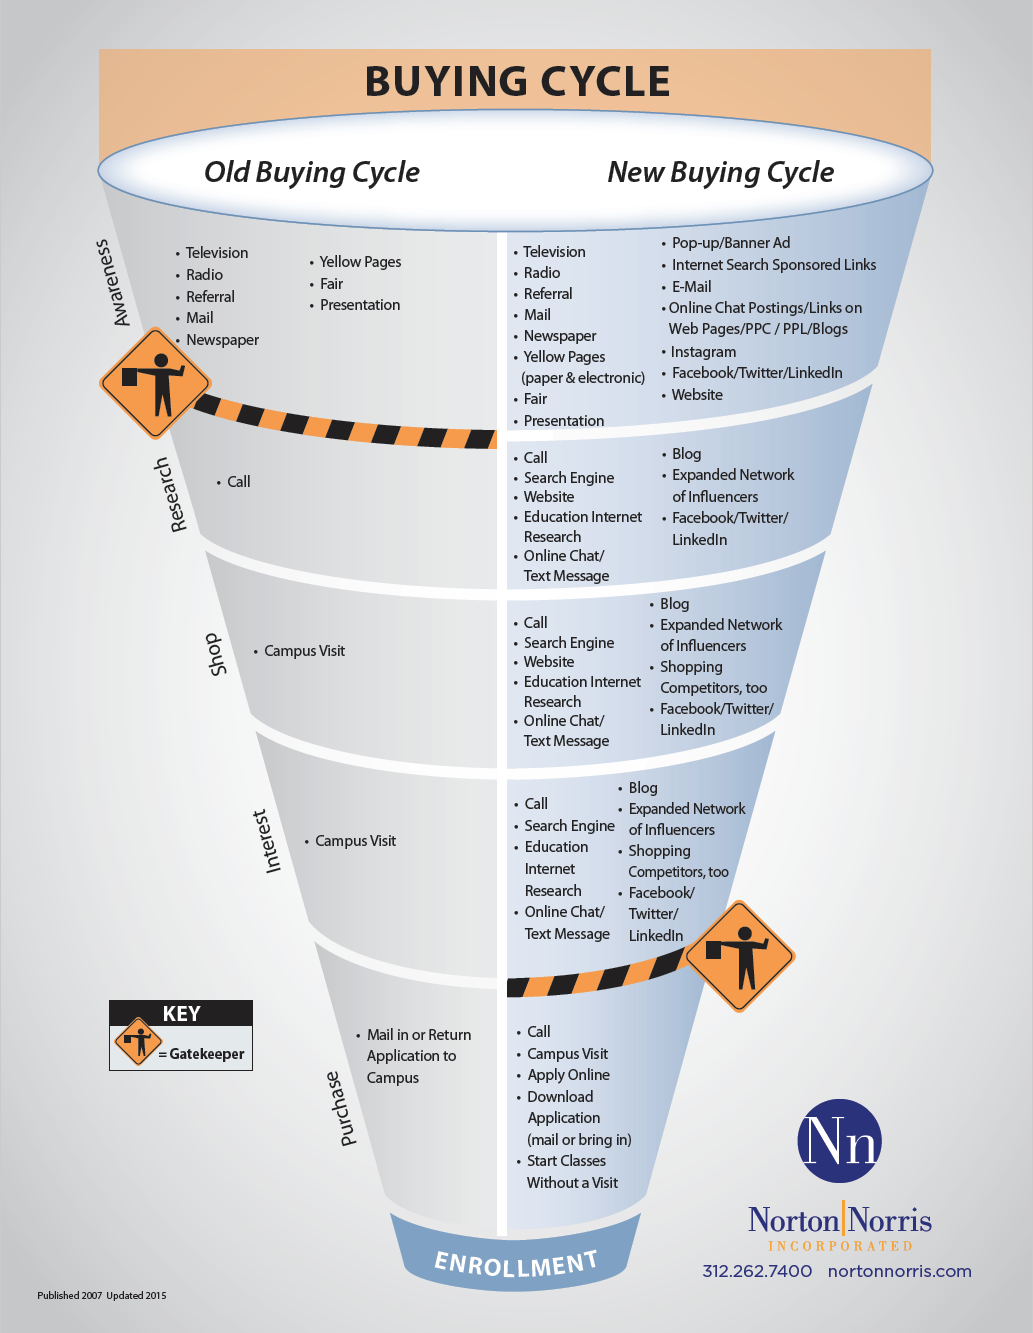 The EvoLLLution | Buying Cycle Diagram 1